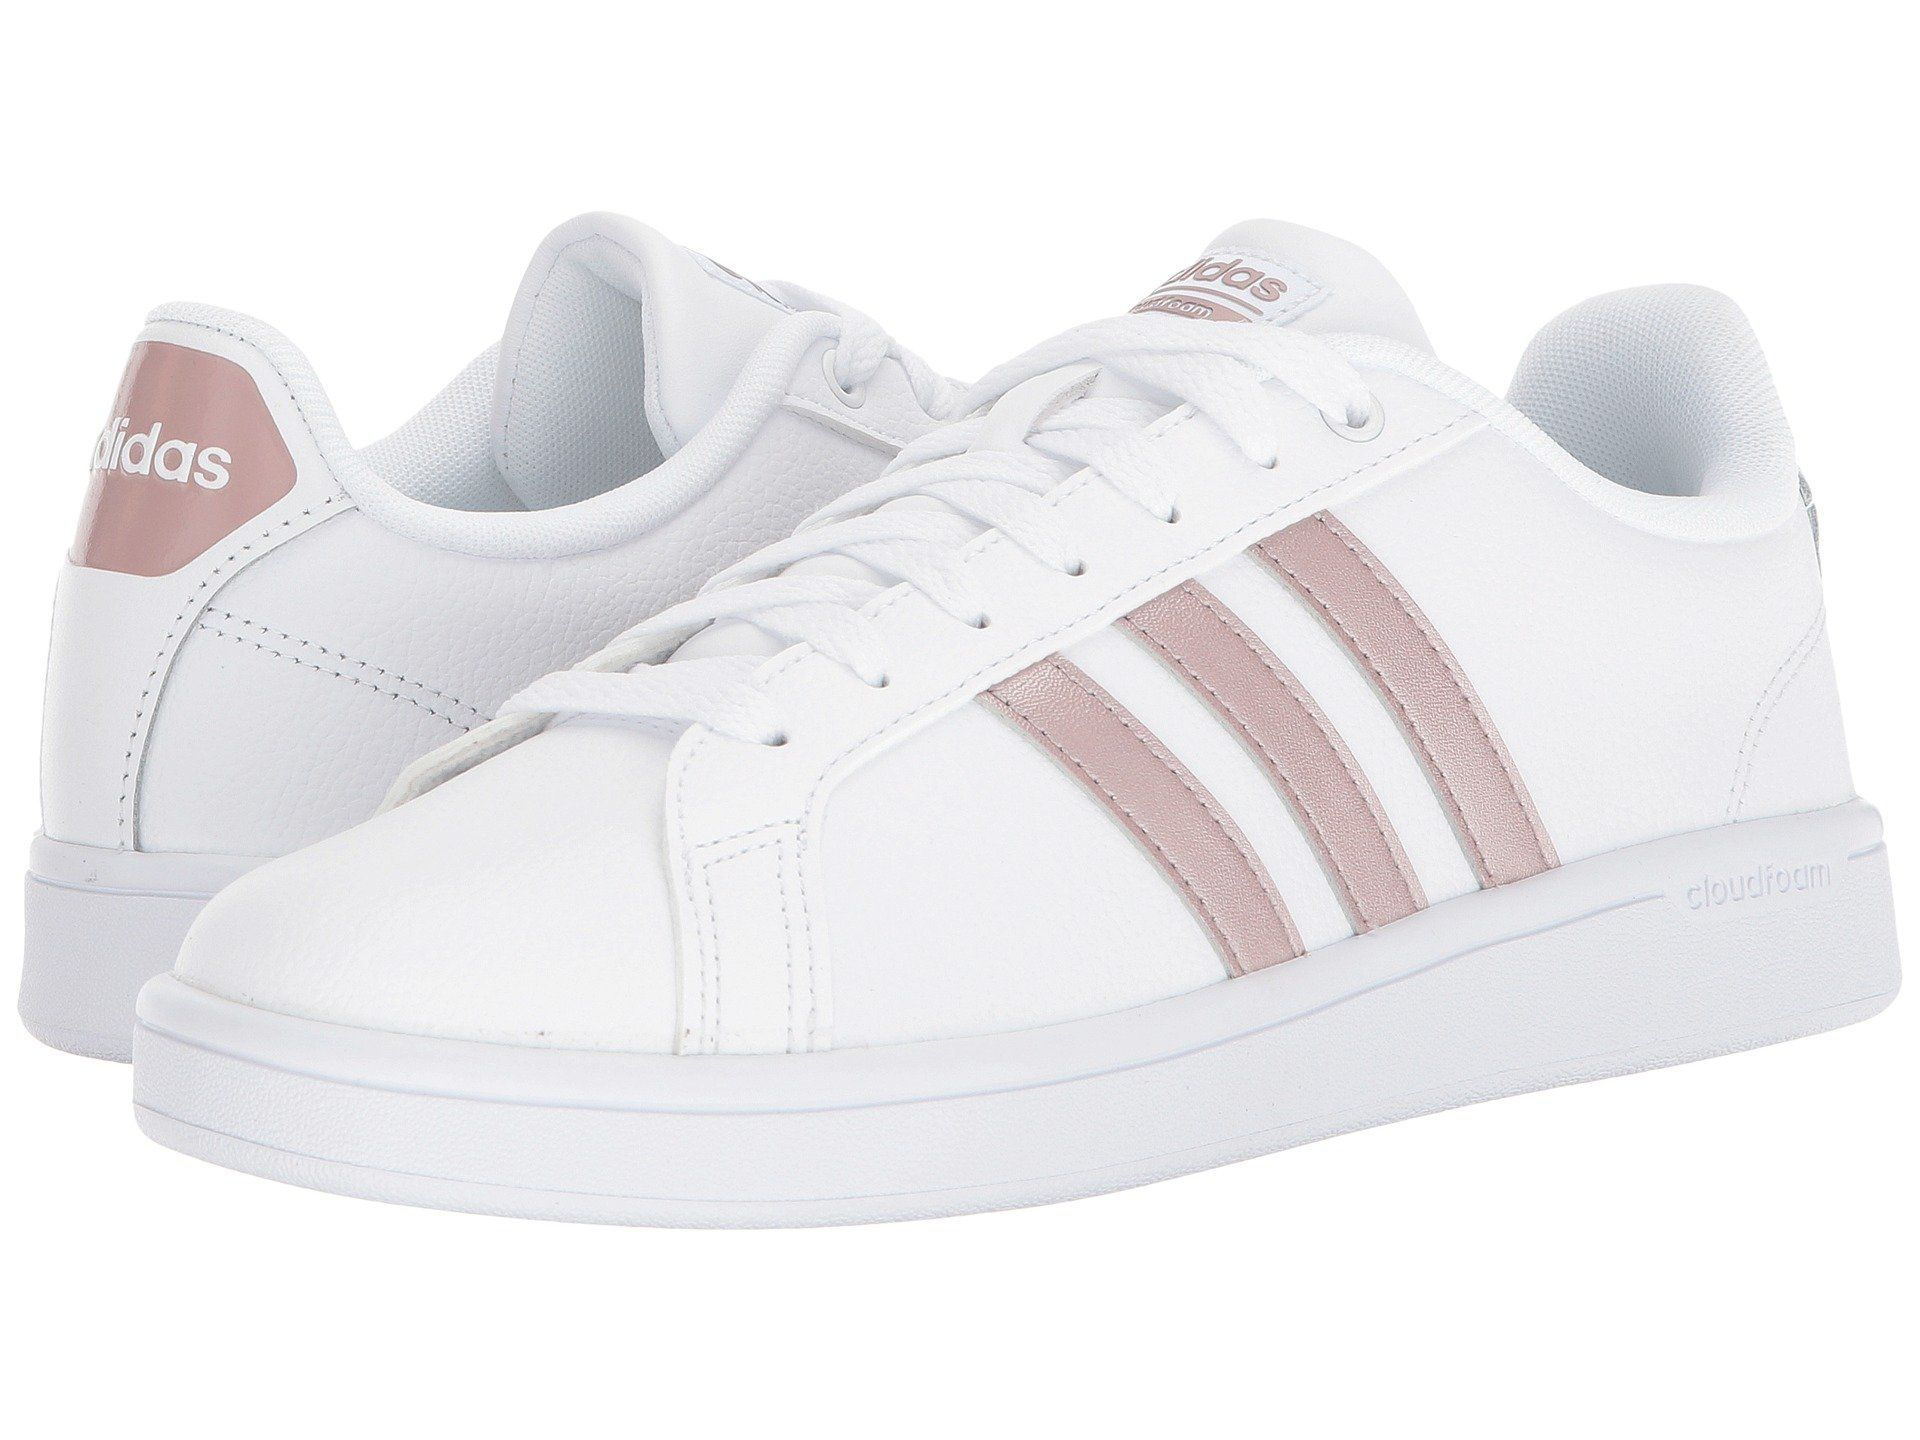 Cloudfoam Advantage Stripe, White/white/grey 3 | Adidas ...